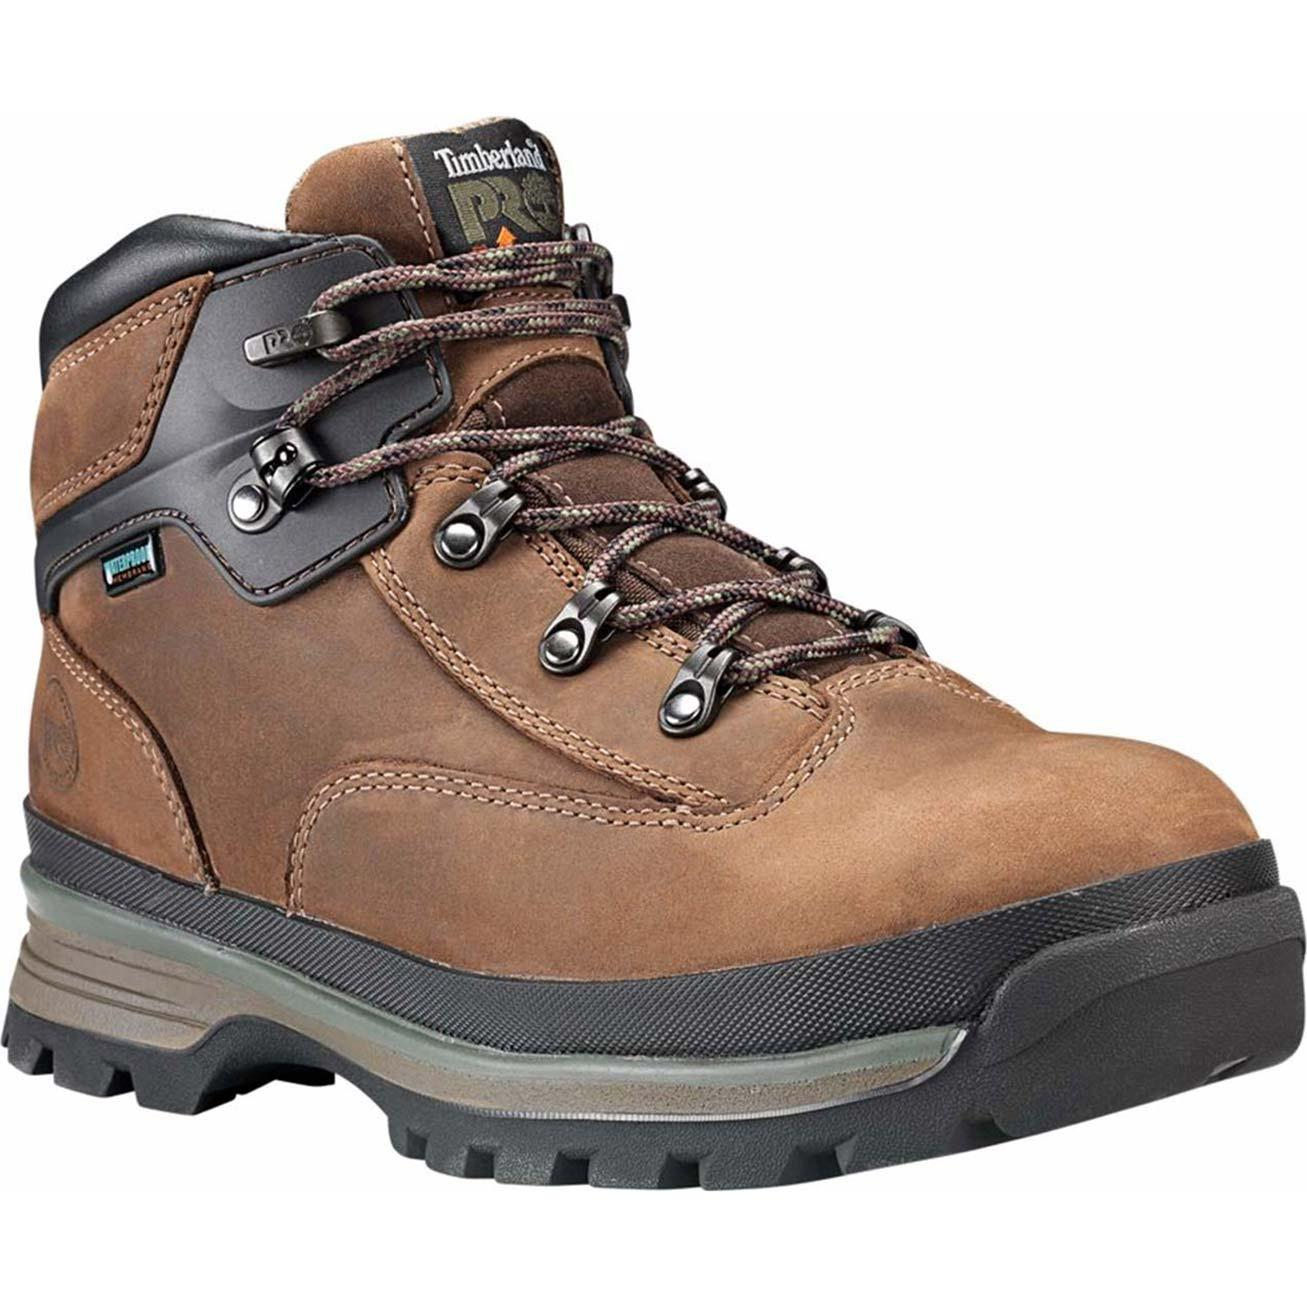 timberland pro new euro hiker brown safety boots